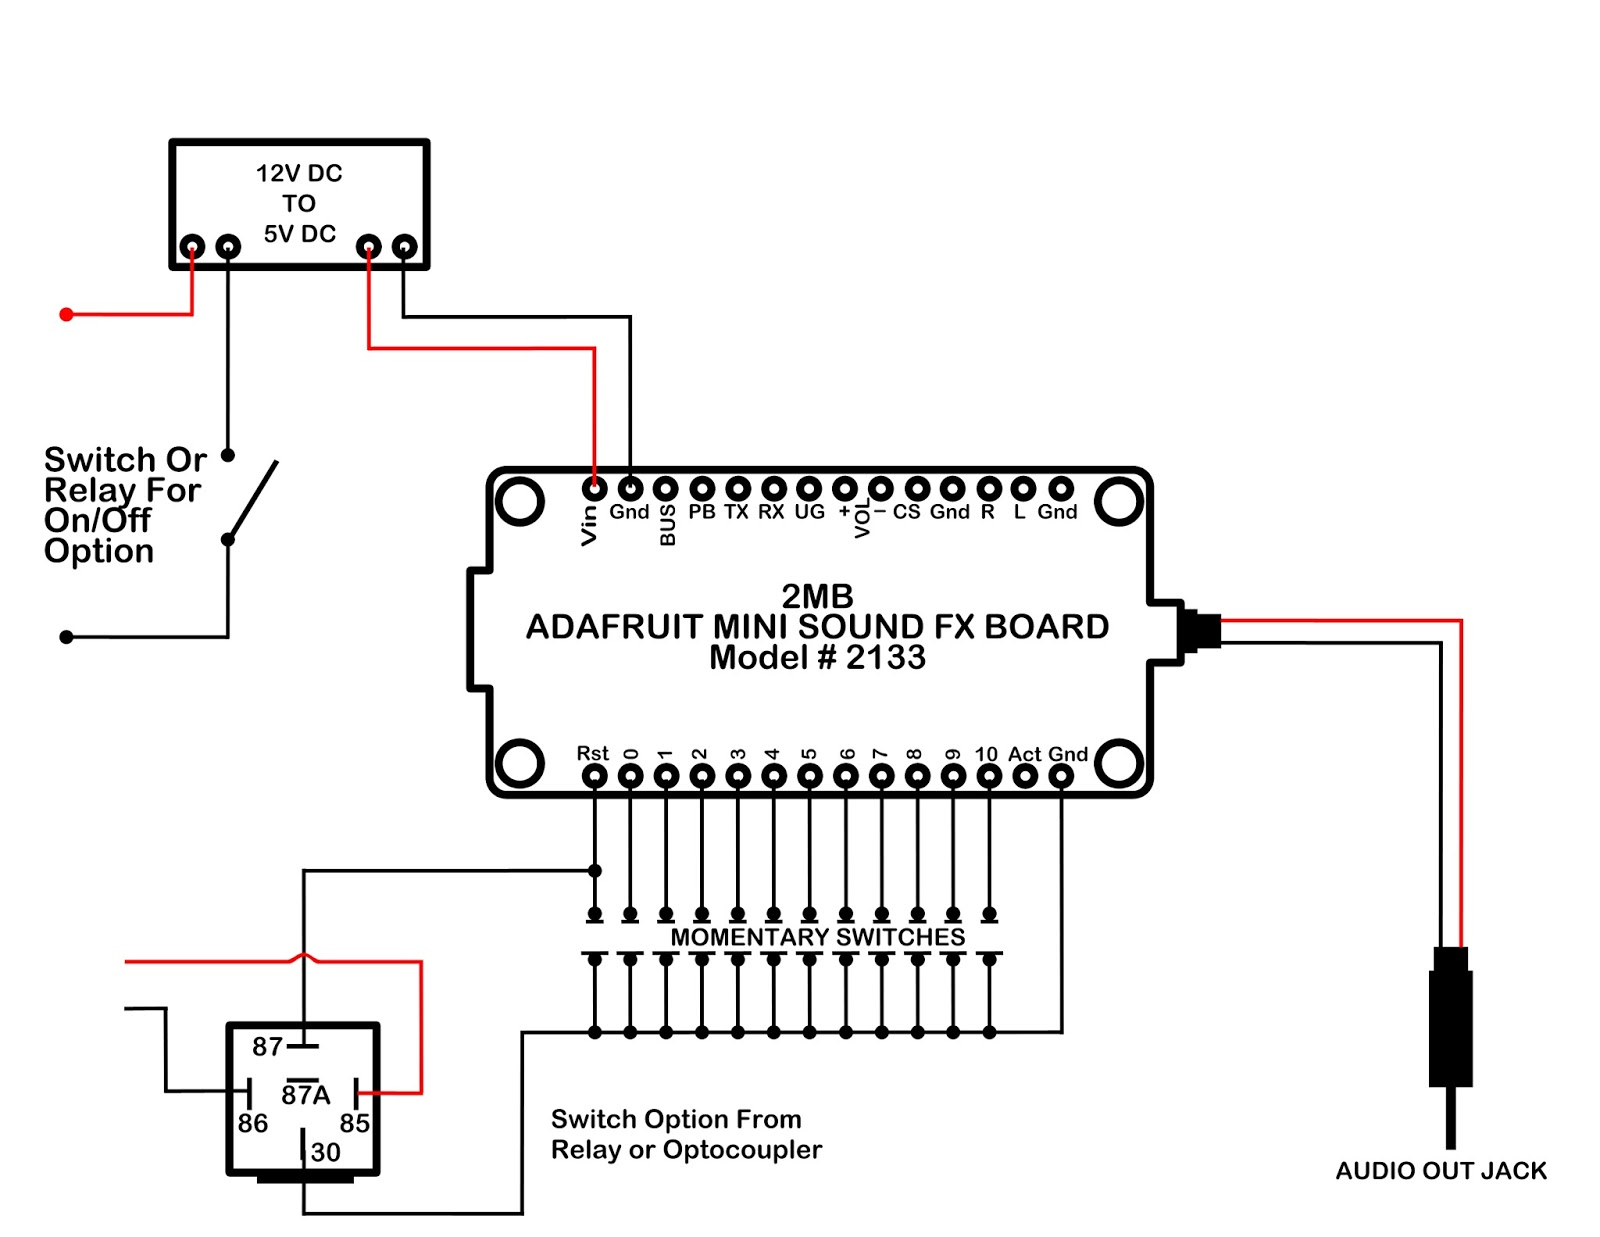 small resolution of here is a little additional work done on the diagram to include a power on off switch and to use the option of either a relay or optocoupler as switch